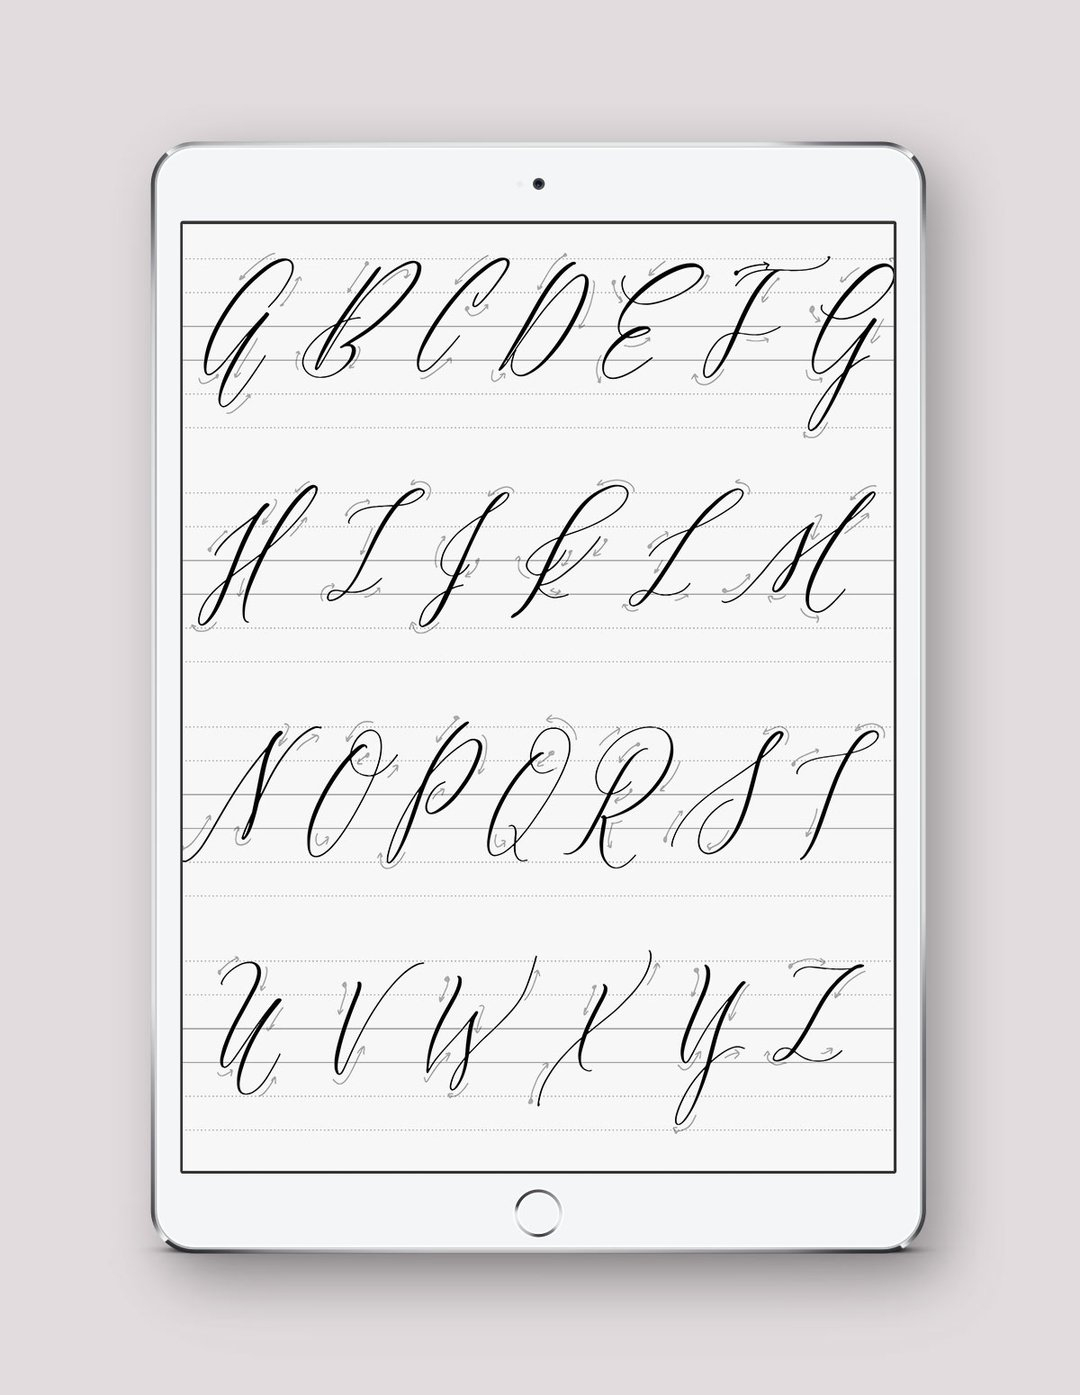 Digital And Printable Calligraphy Practice Guides - Saffron